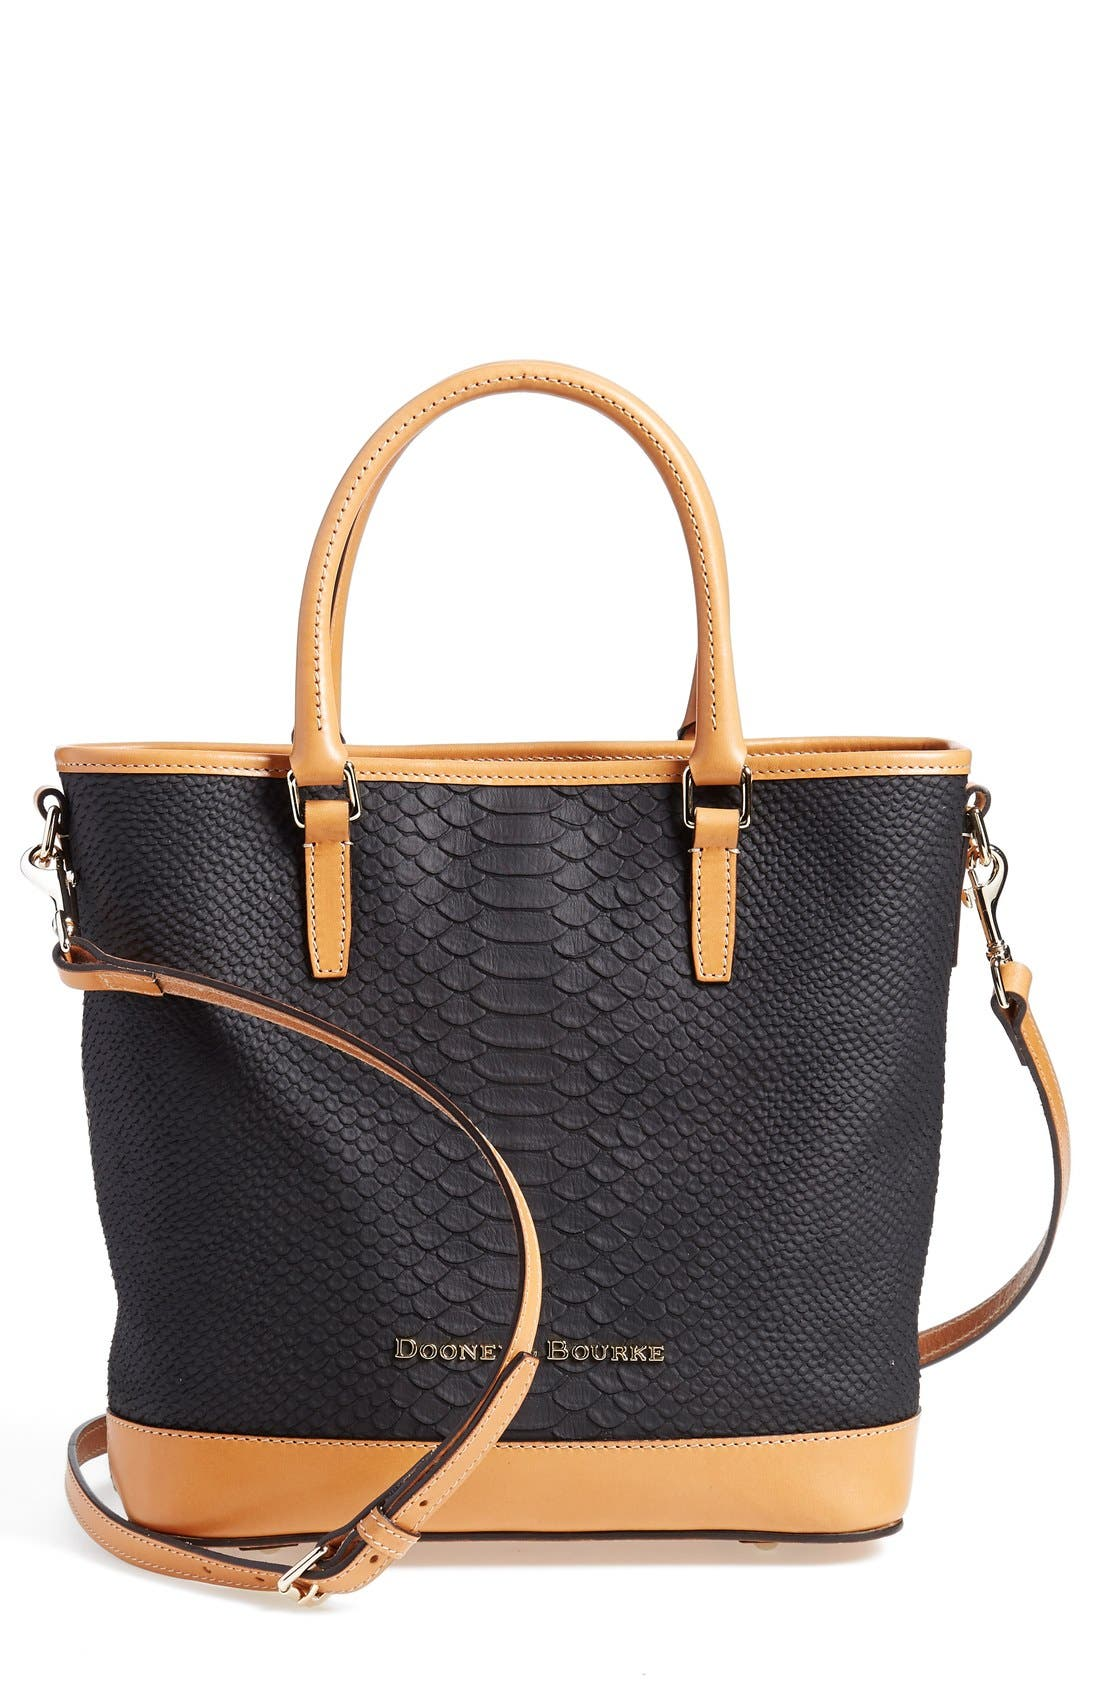 DOONEY & BOURKE, 'Cara' Snake Embossed Leather Satchel, Main thumbnail 1, color, 001